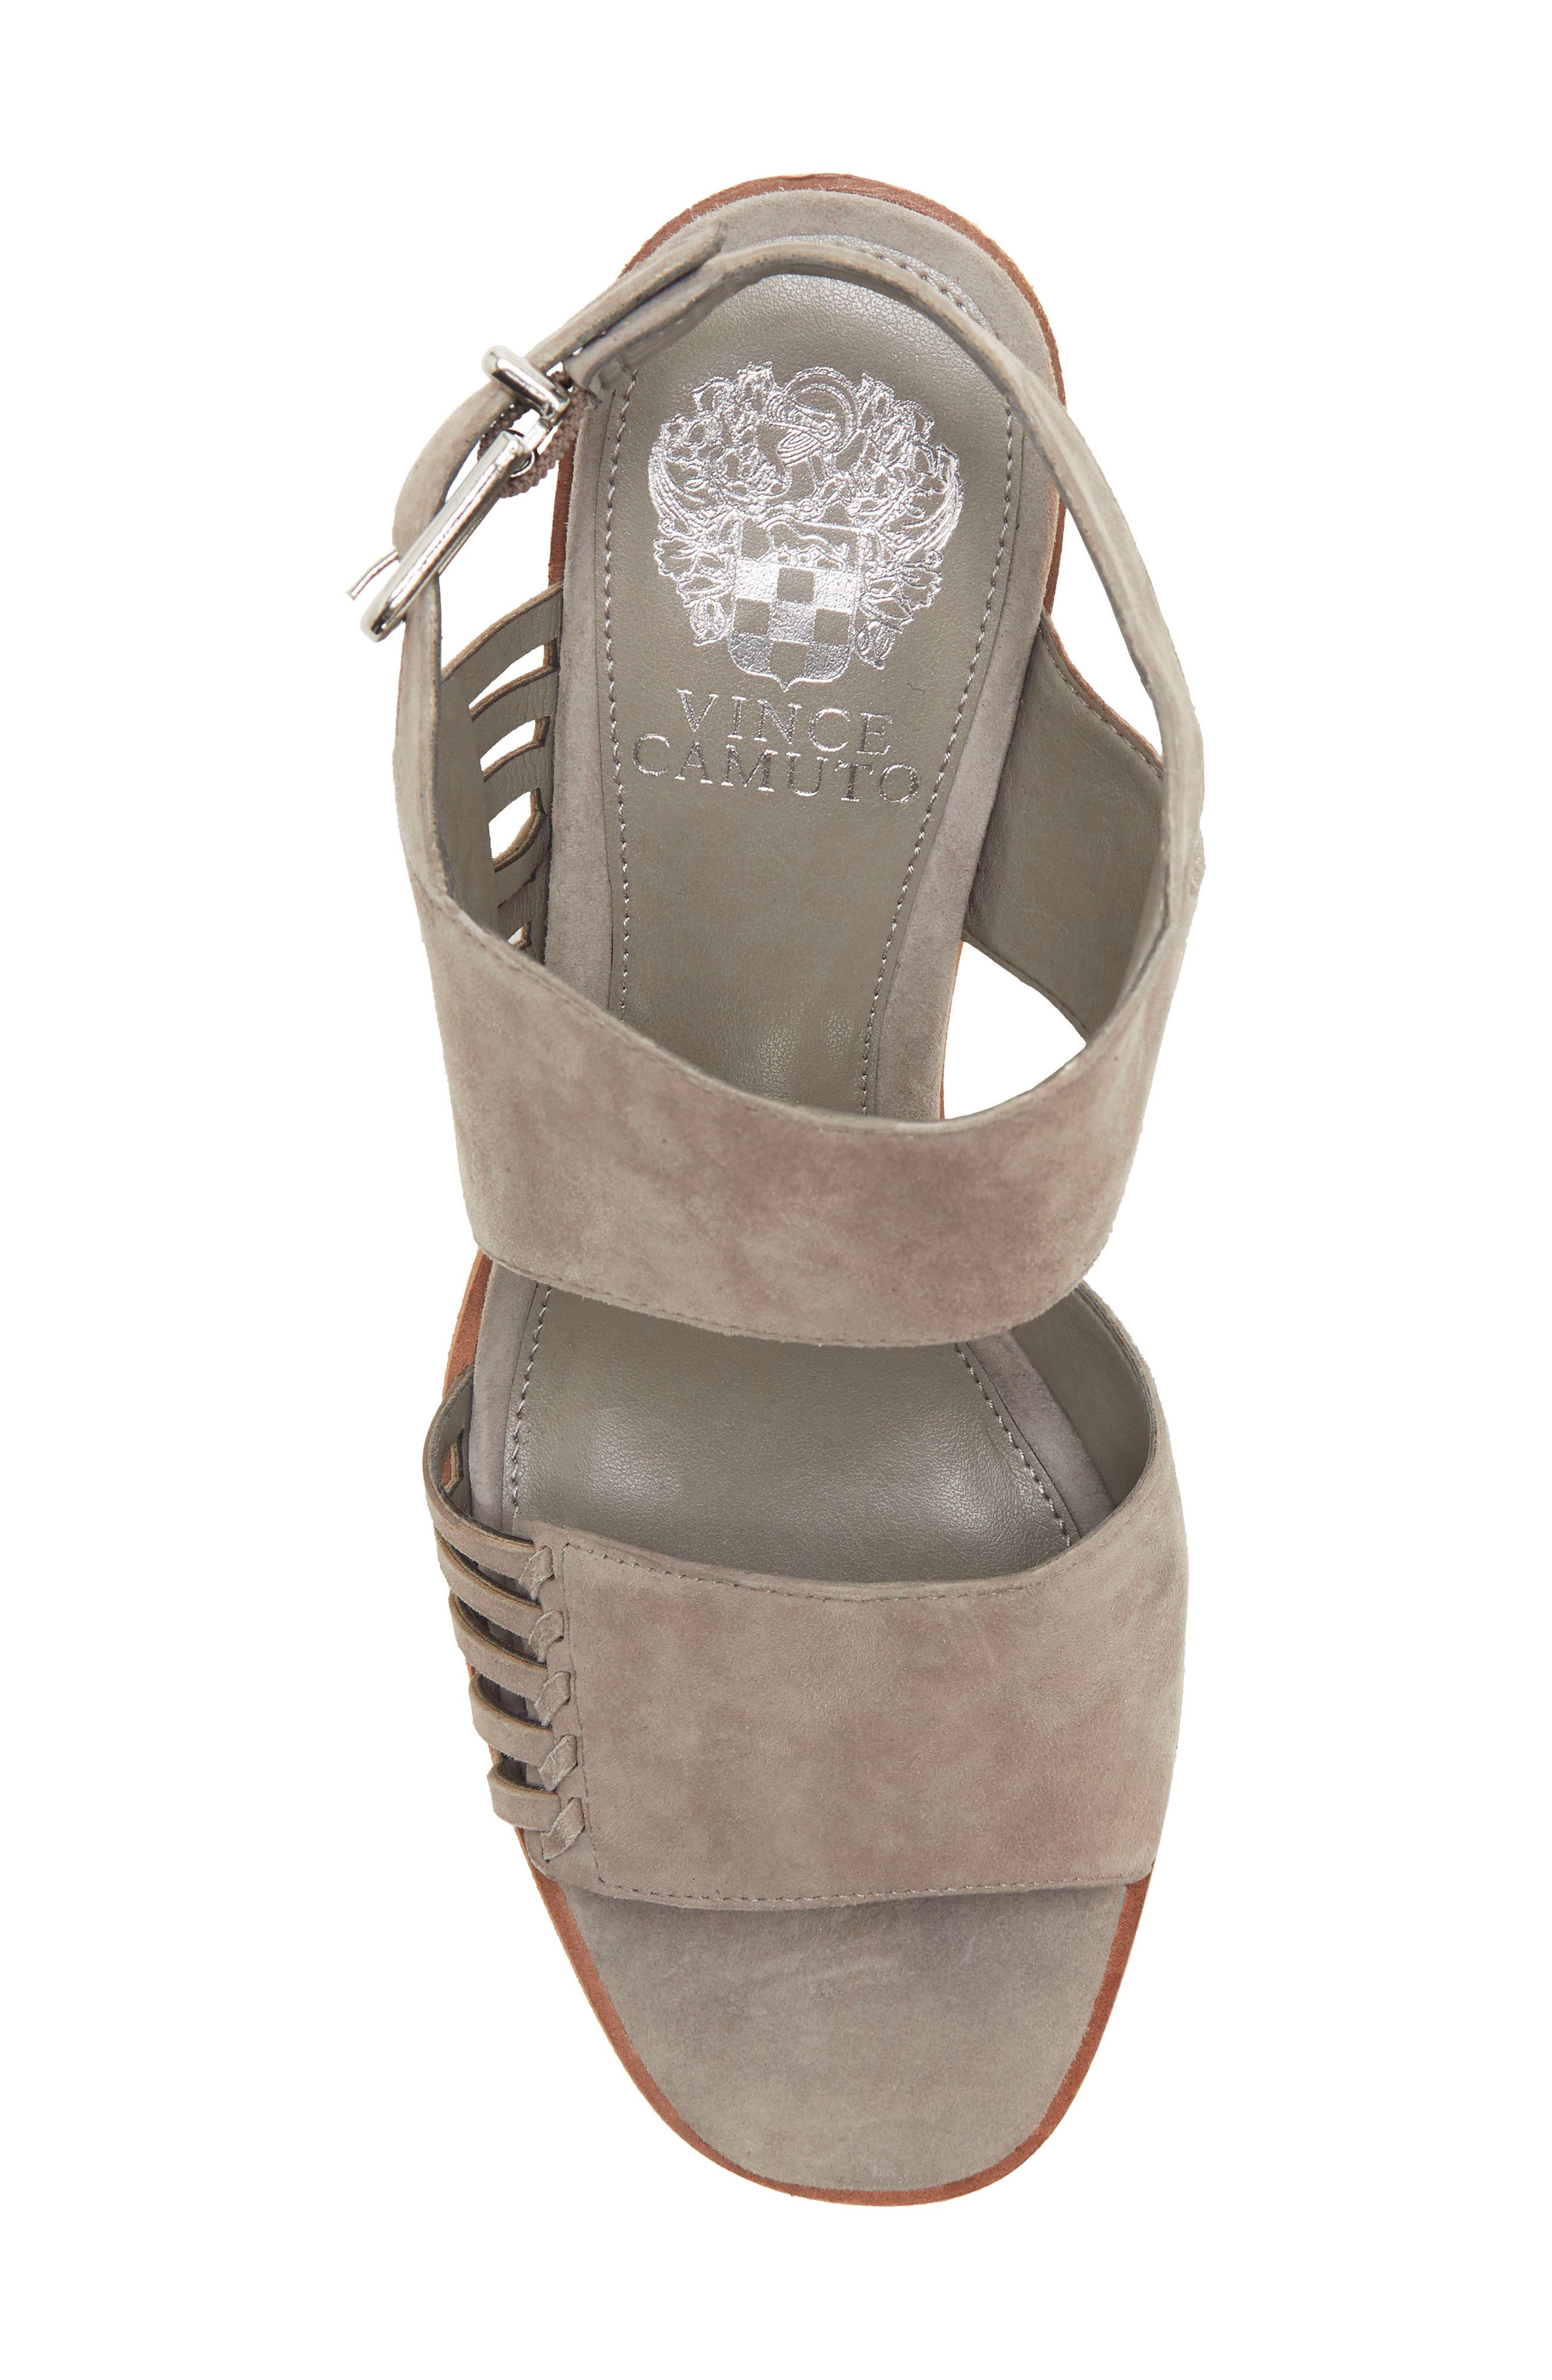 VINCE CAMUTO, Karmelo Slingback Sandal, Alternate thumbnail 5, color, STORM GREY LEATHER